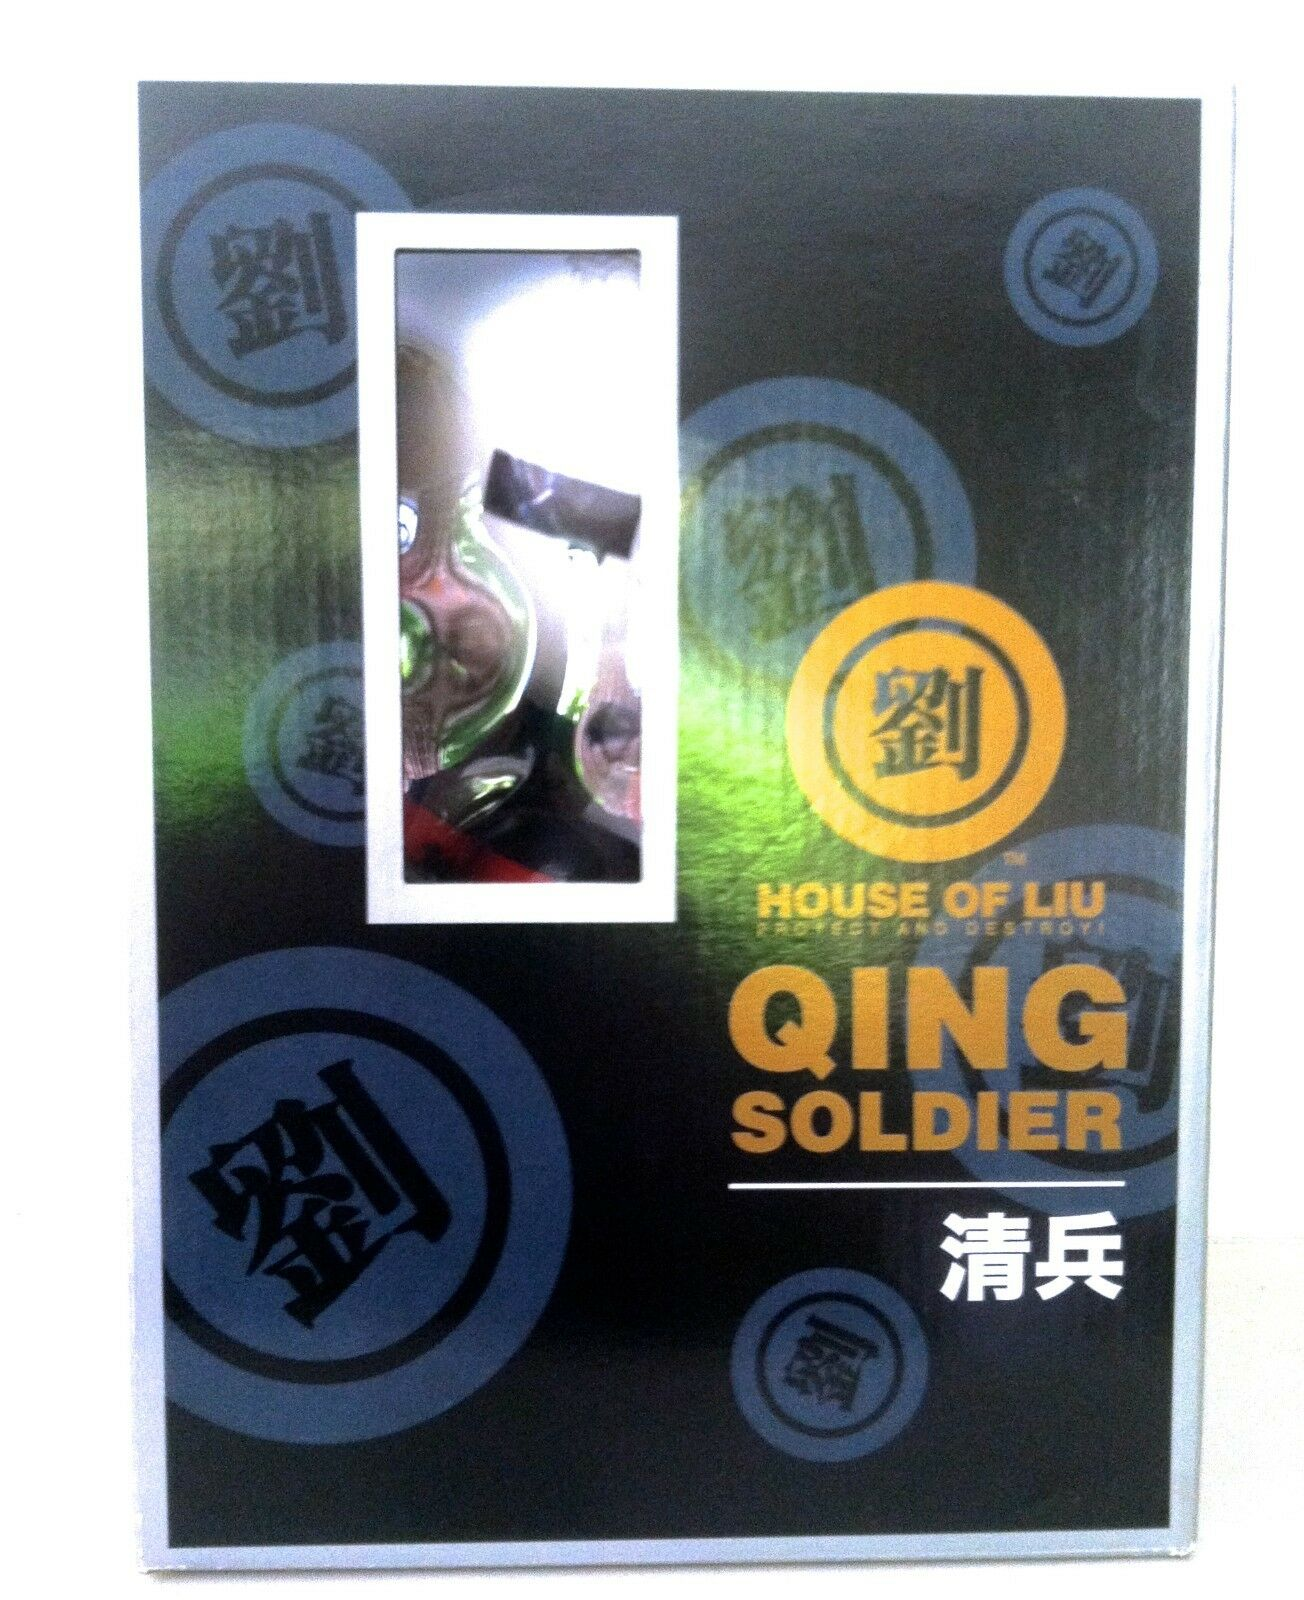 HOUSE OF LIU QING SOLDIER PROTECT & DESTROY CRAZY LABEL VEGGIESOMETHING FIGURE